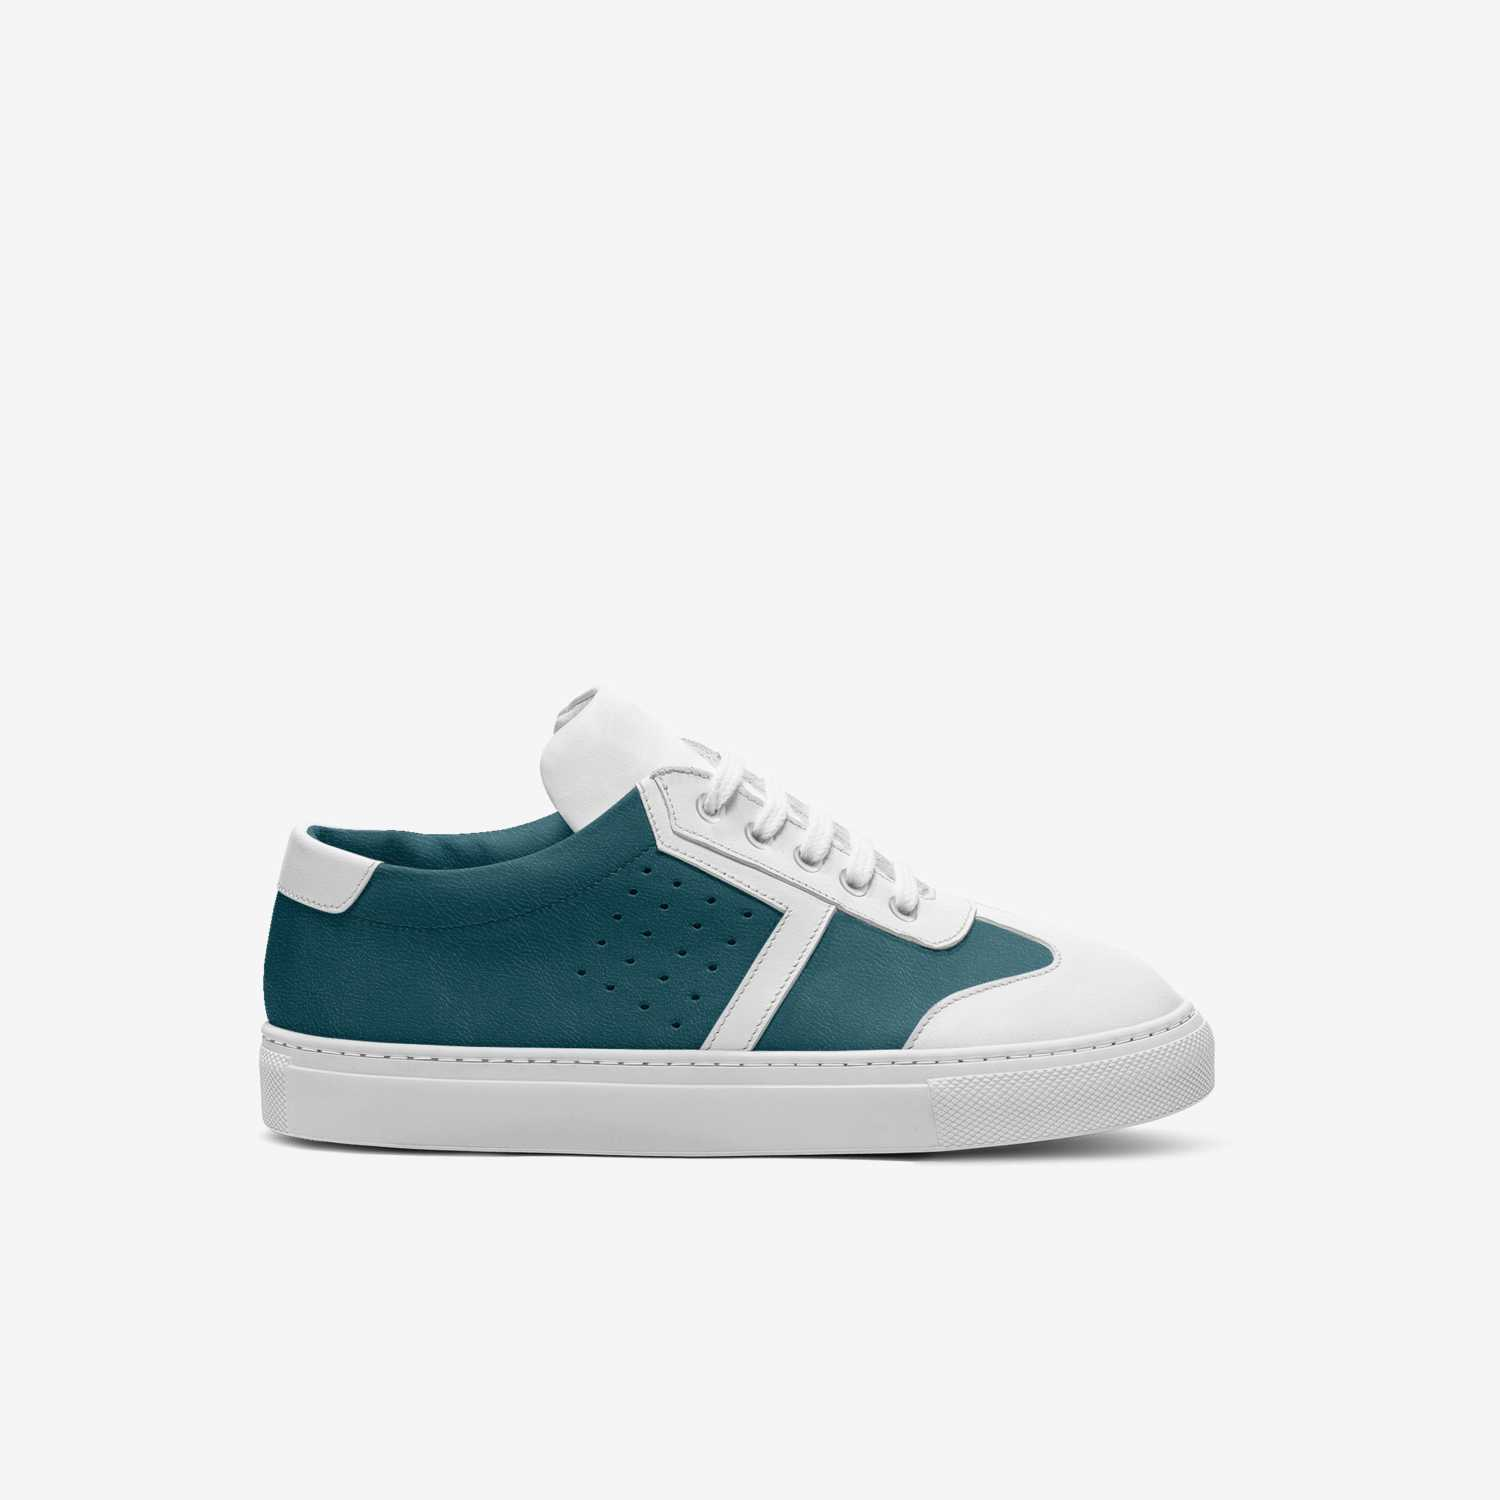 m custom made in Italy shoes by Test Pre-orders Unassigned | Side view